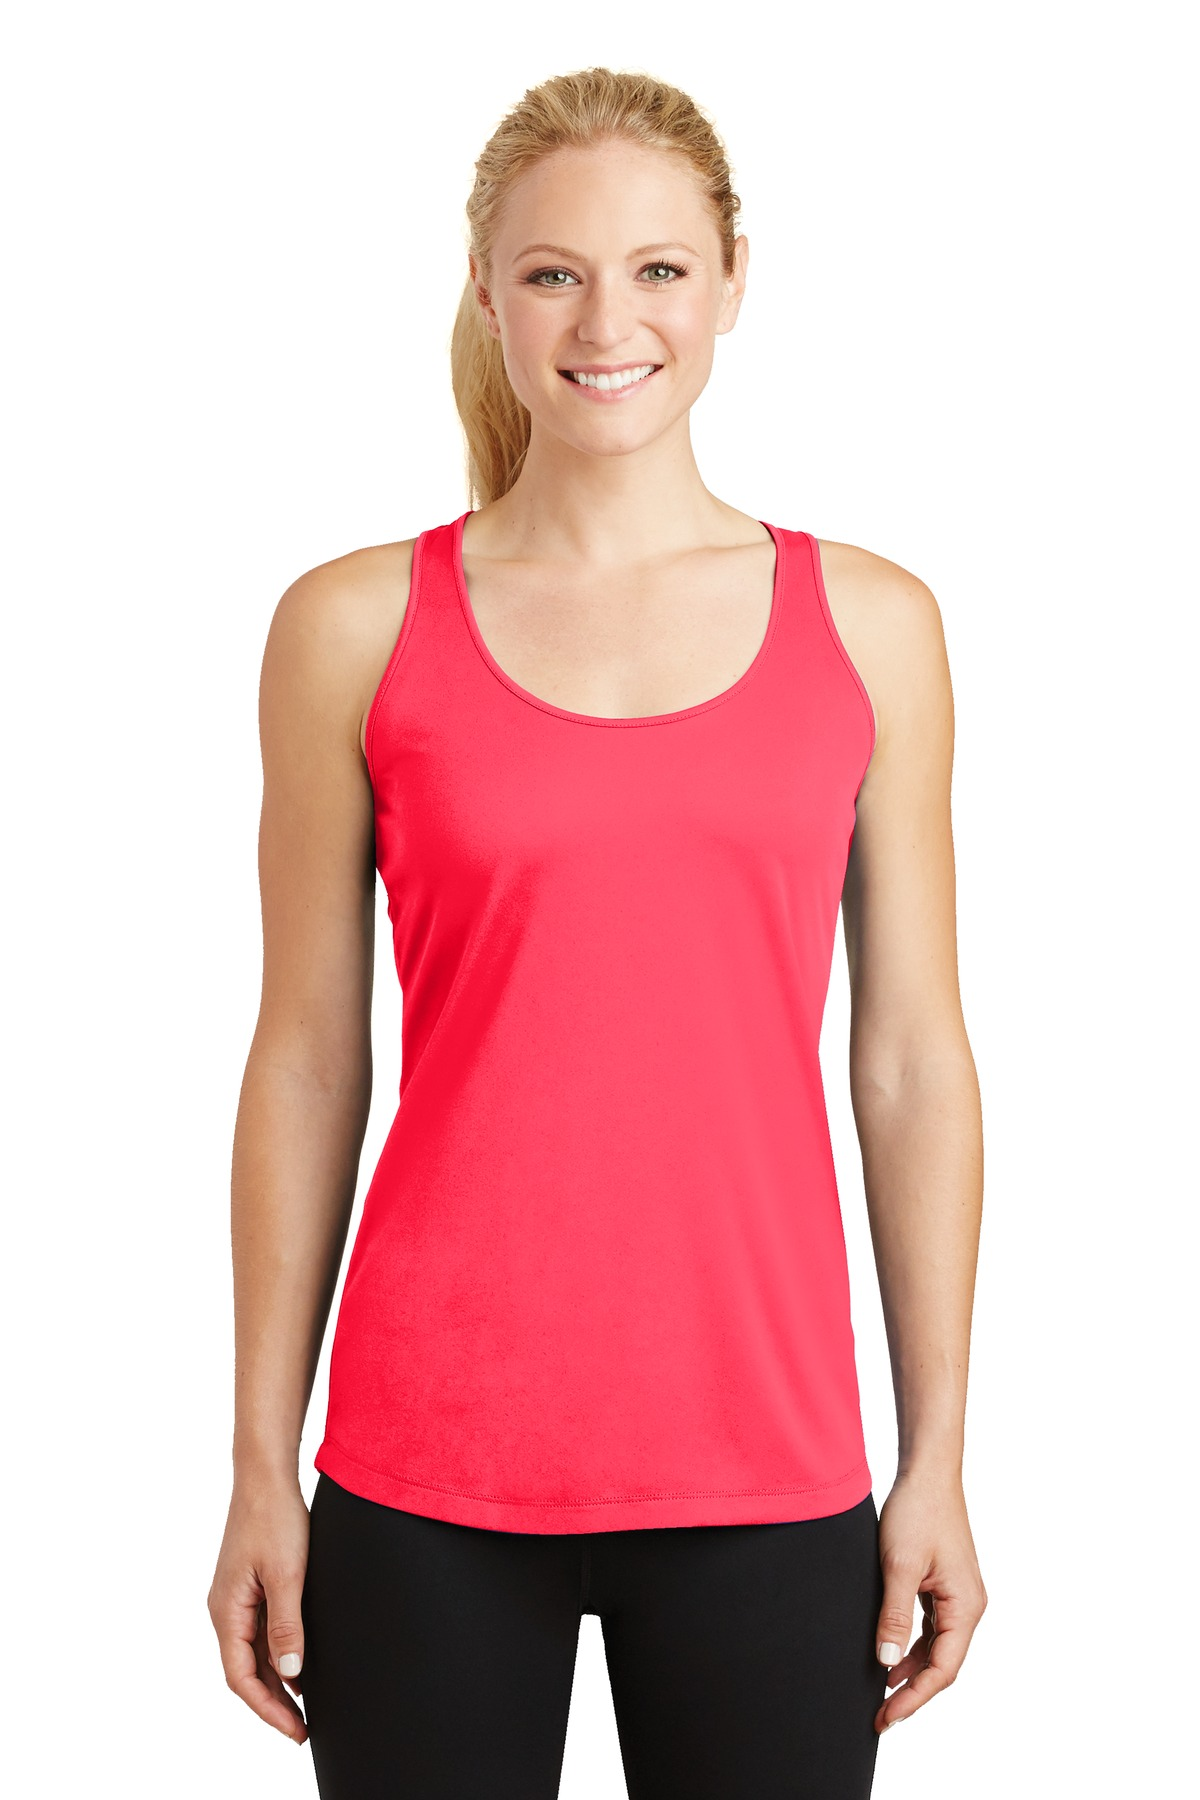 Sport-Tek ®  Ladies PosiCharge ®  Competitor ™  Racerback Tank. LST356 - Hot Coral